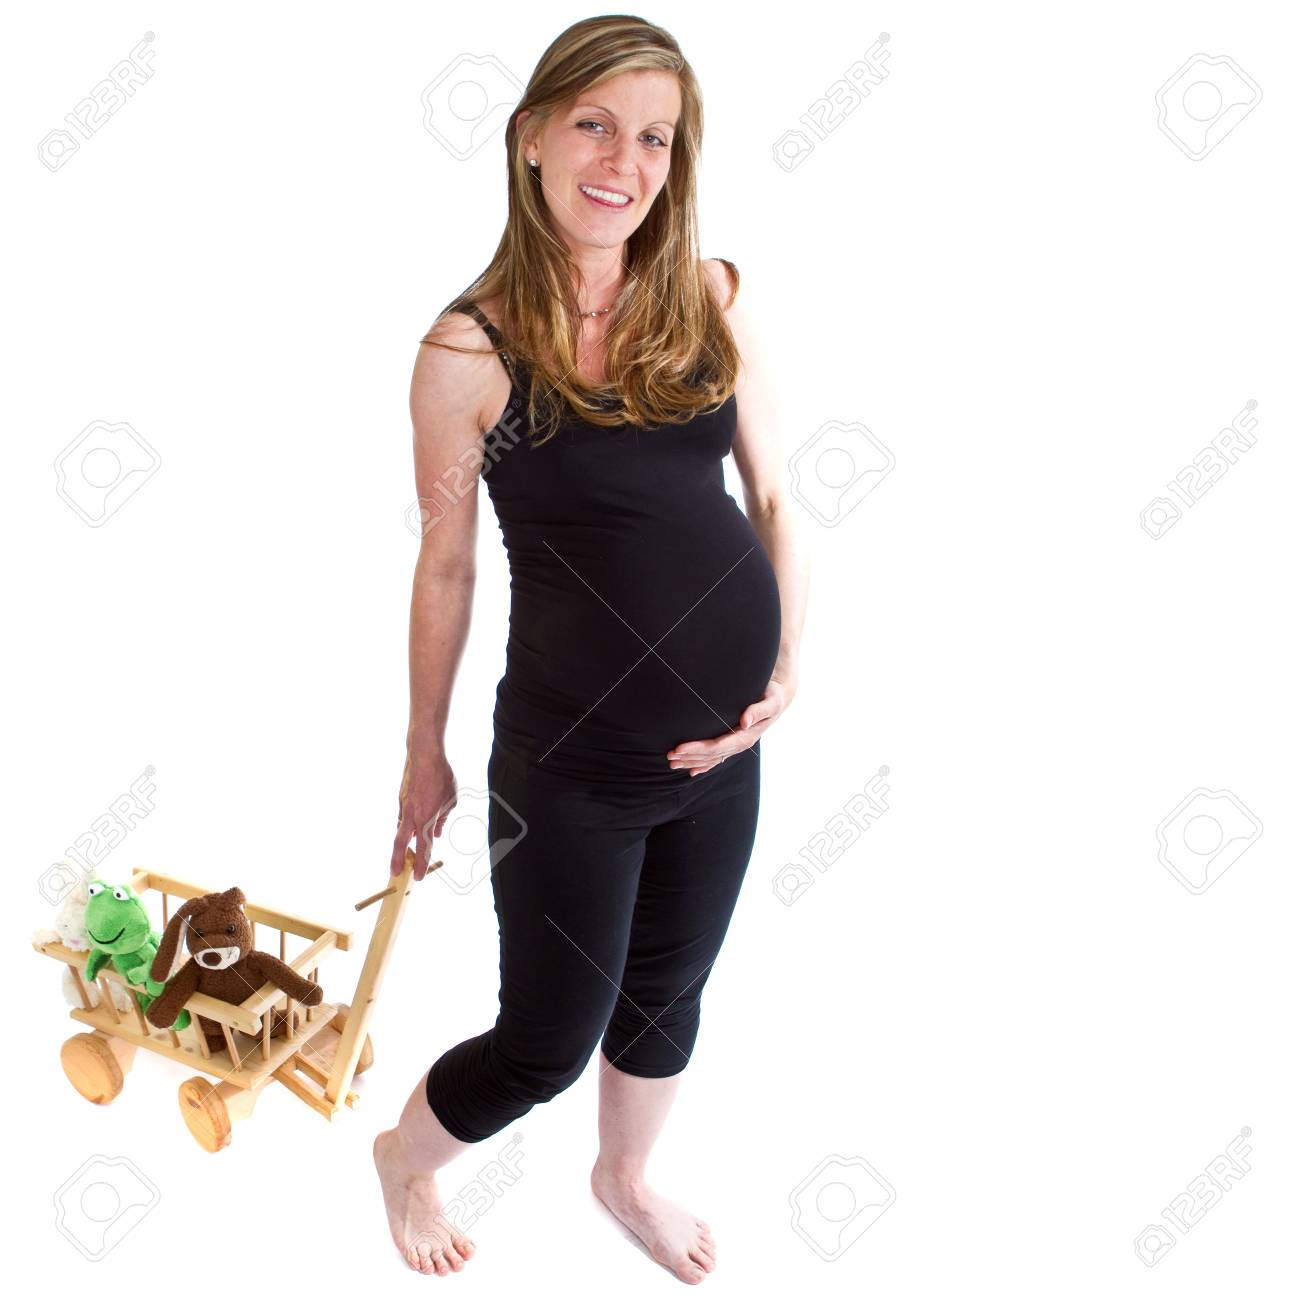 Young fresh pregnant woman is pulling  a trolley filled with toy animals isolated over white background. Stock Photo - 7410088